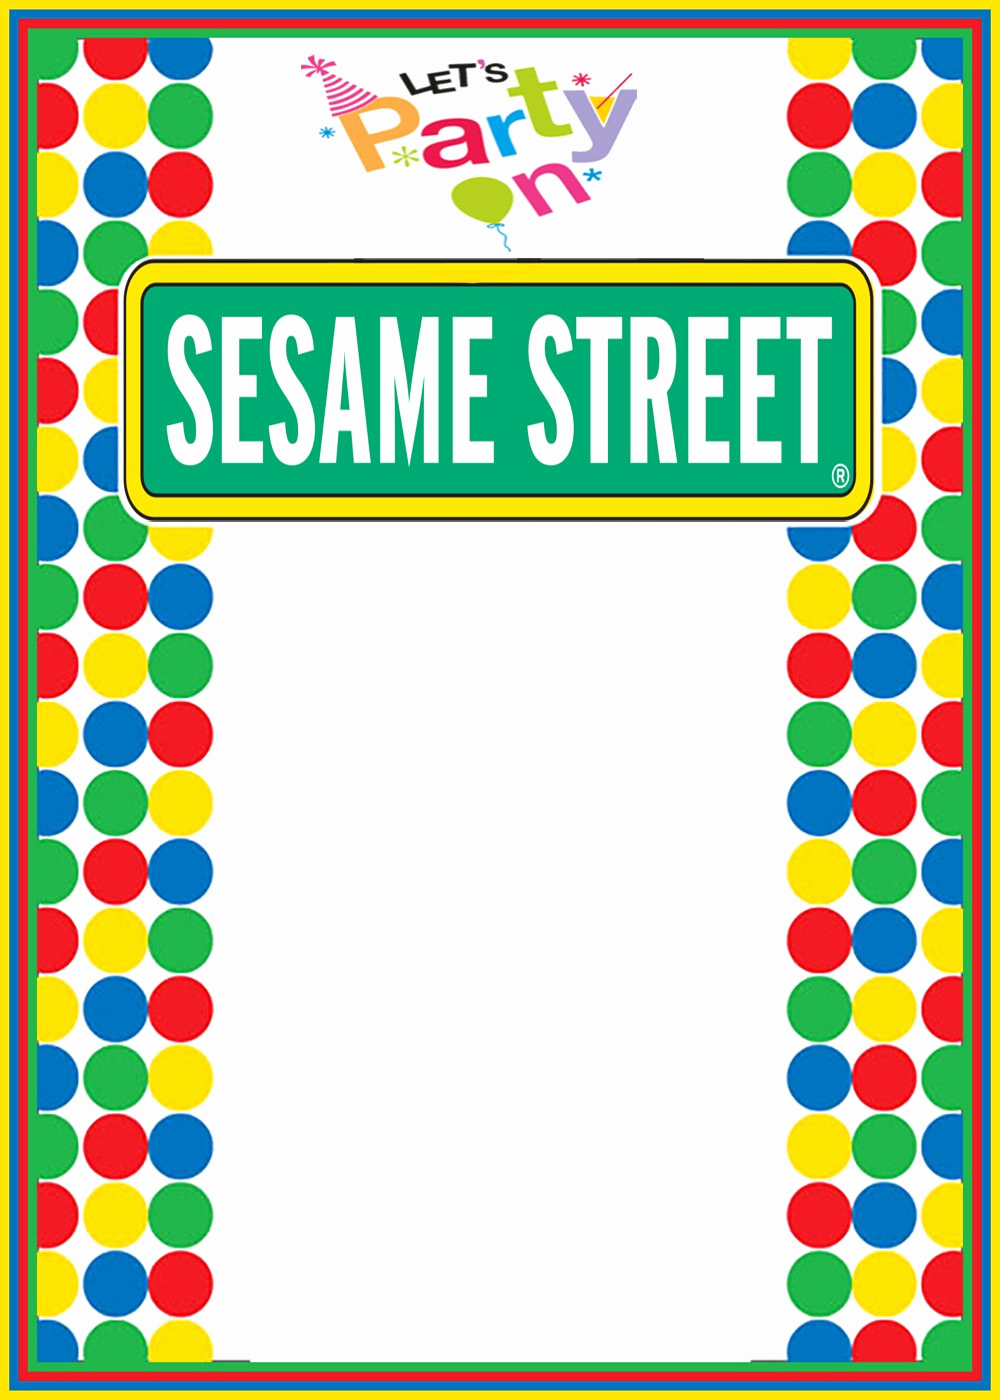 Sesame Street Invitation Template Inspirational Free Printable Sesame Street Invitation Templates